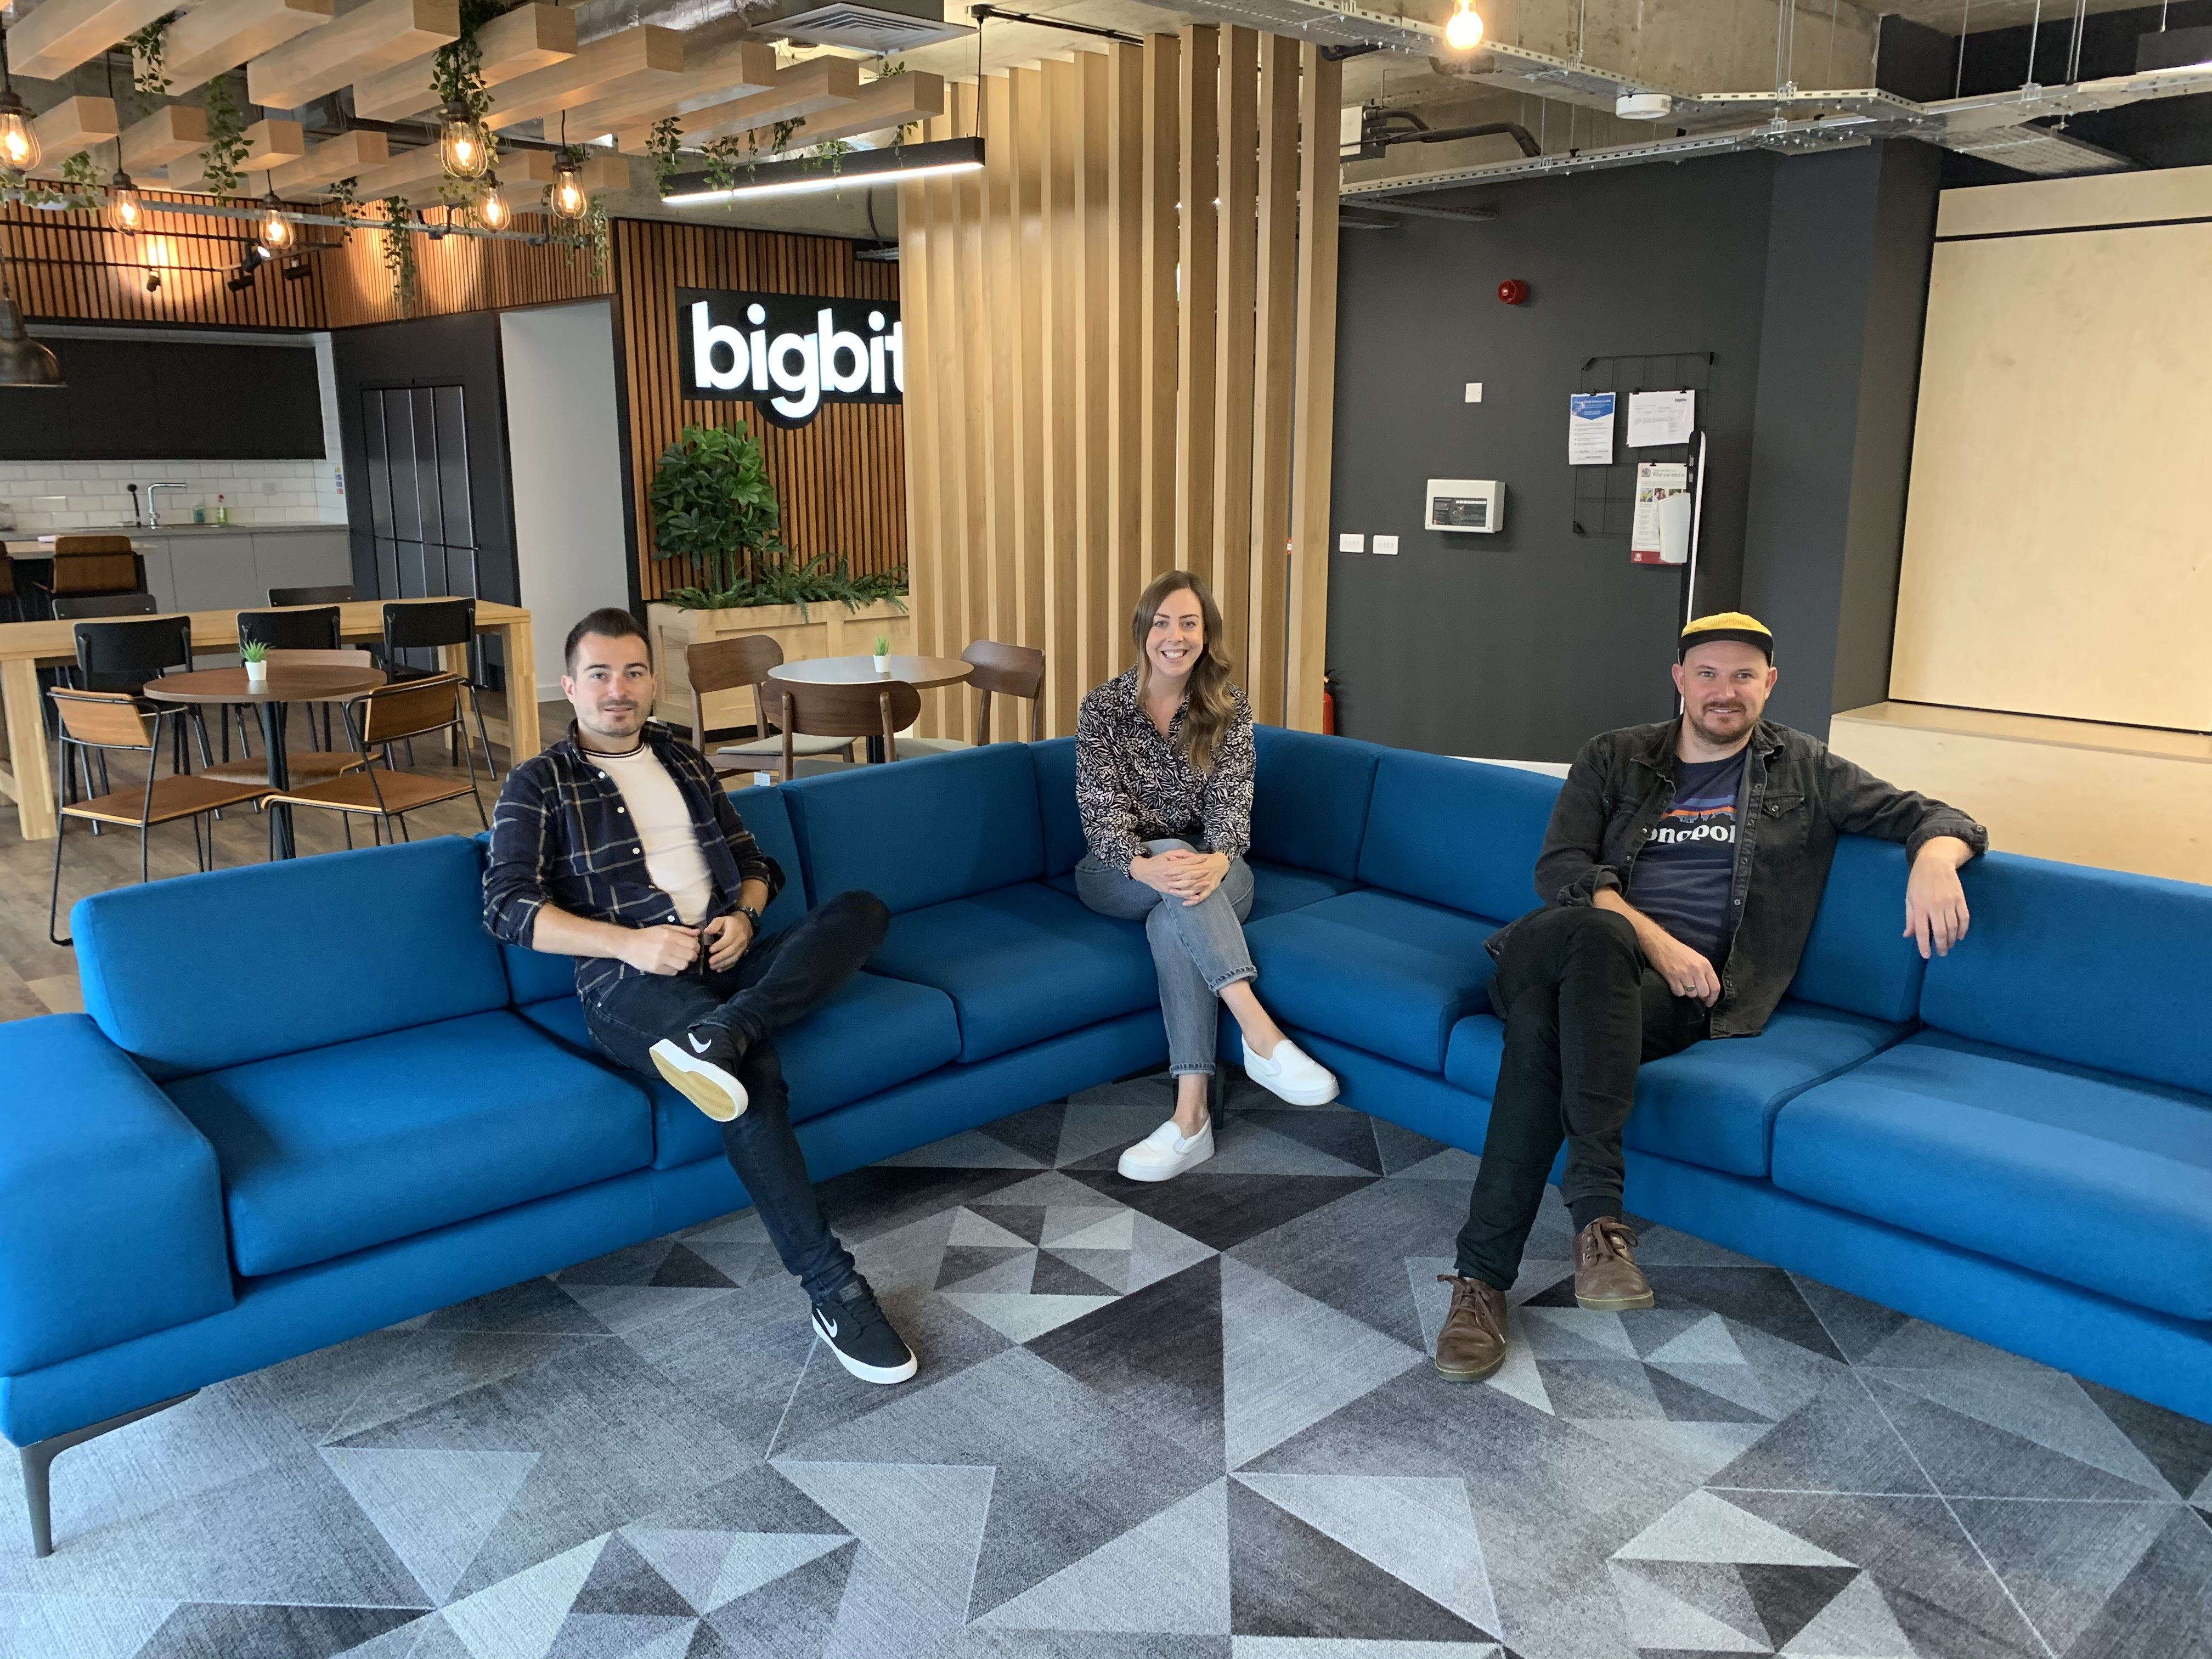 Big Bite's chief engineering officer Mark Goodyear, agency lead Sarah McCormick and chief executive officer Iain McPherson in the new premises on Albert Road.